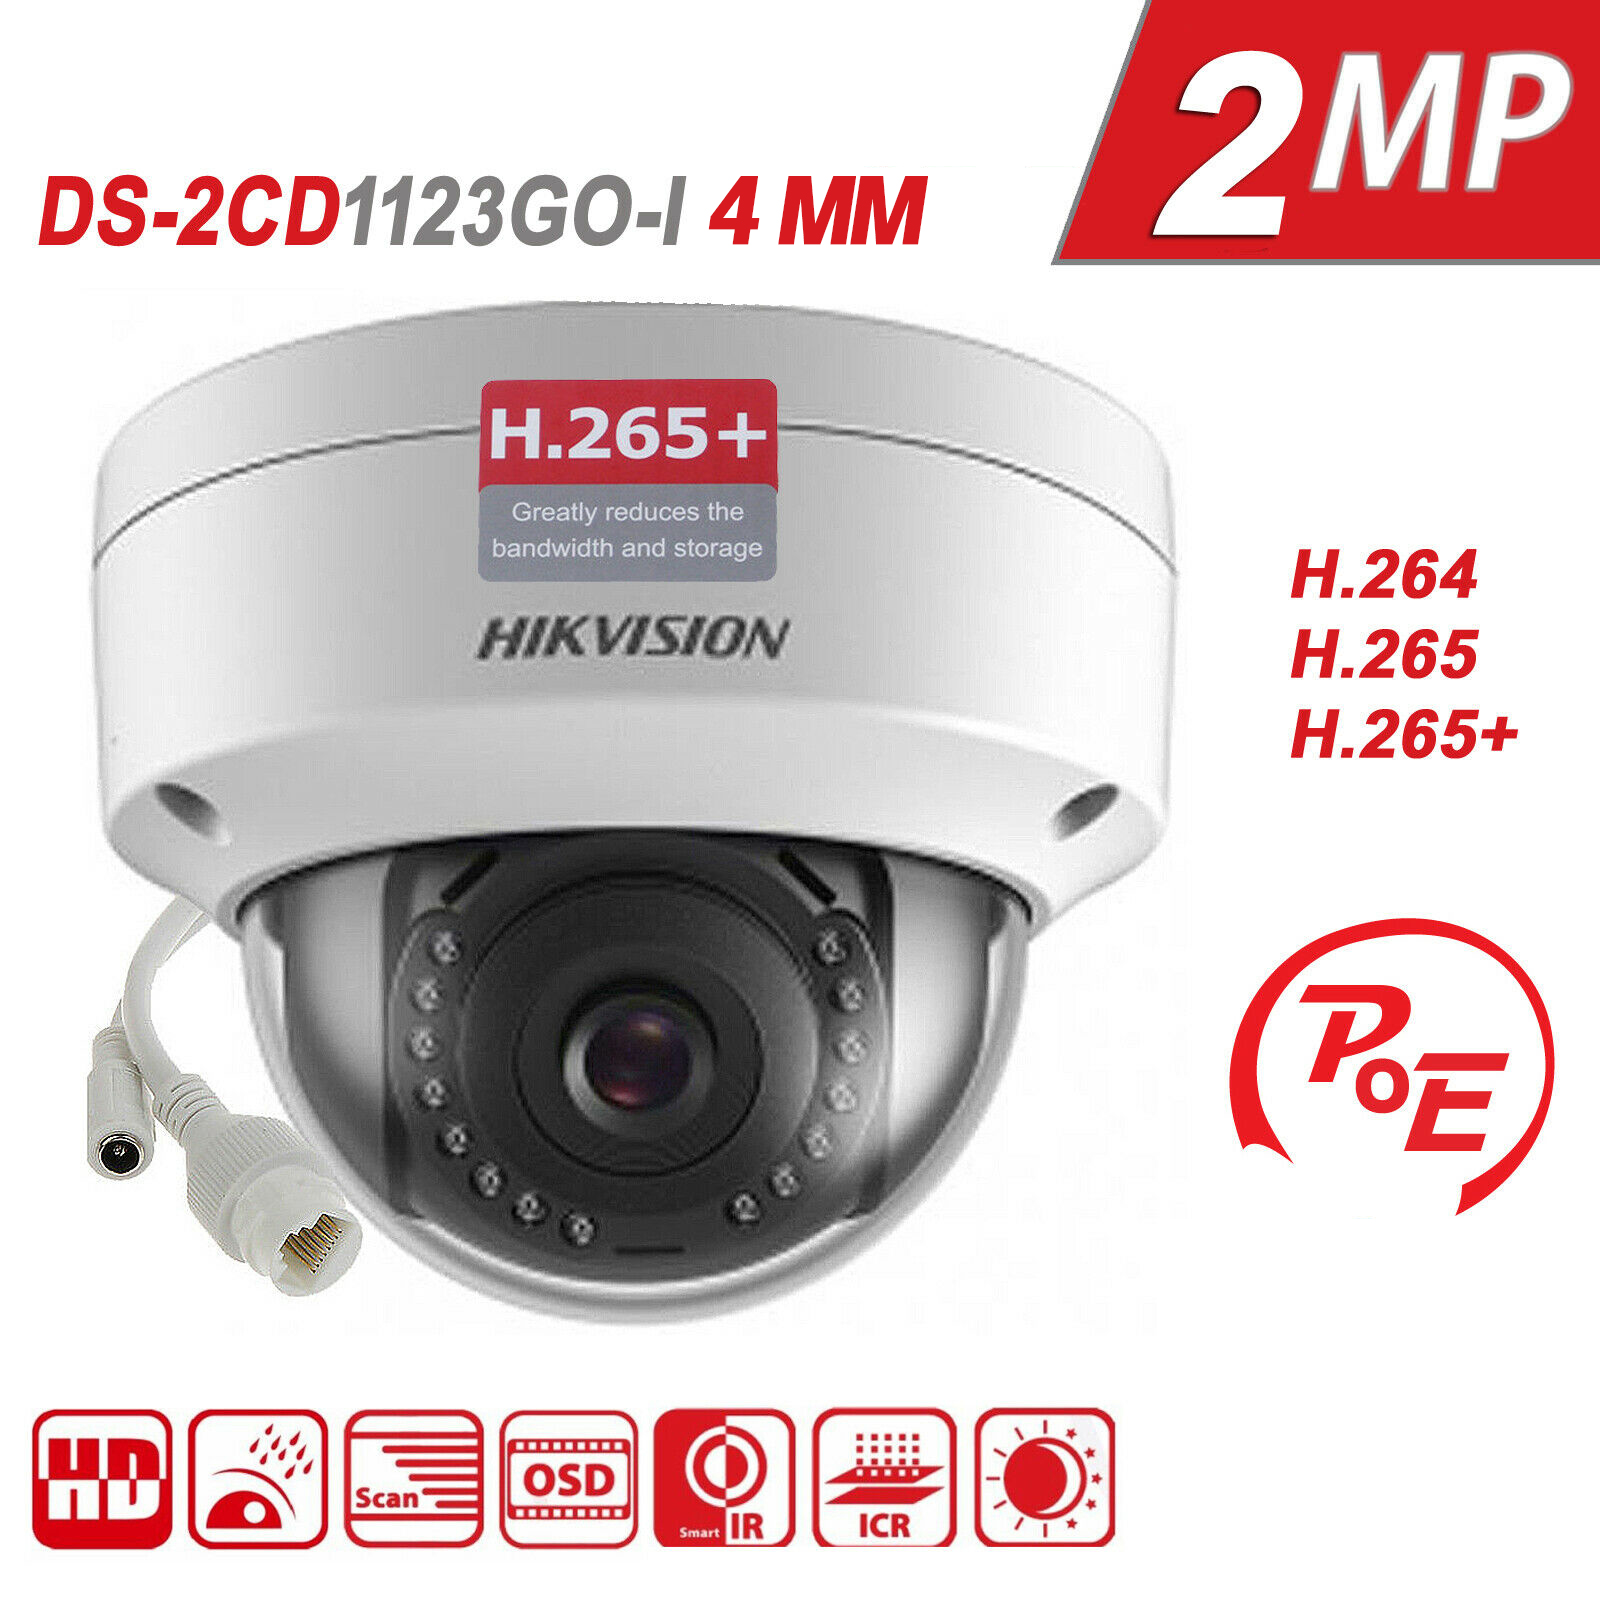 Hikvision Camera DS-2CD1123G0-I 2MP IP POE Dome 1080P H.265 IR30m IP67 4mm lens